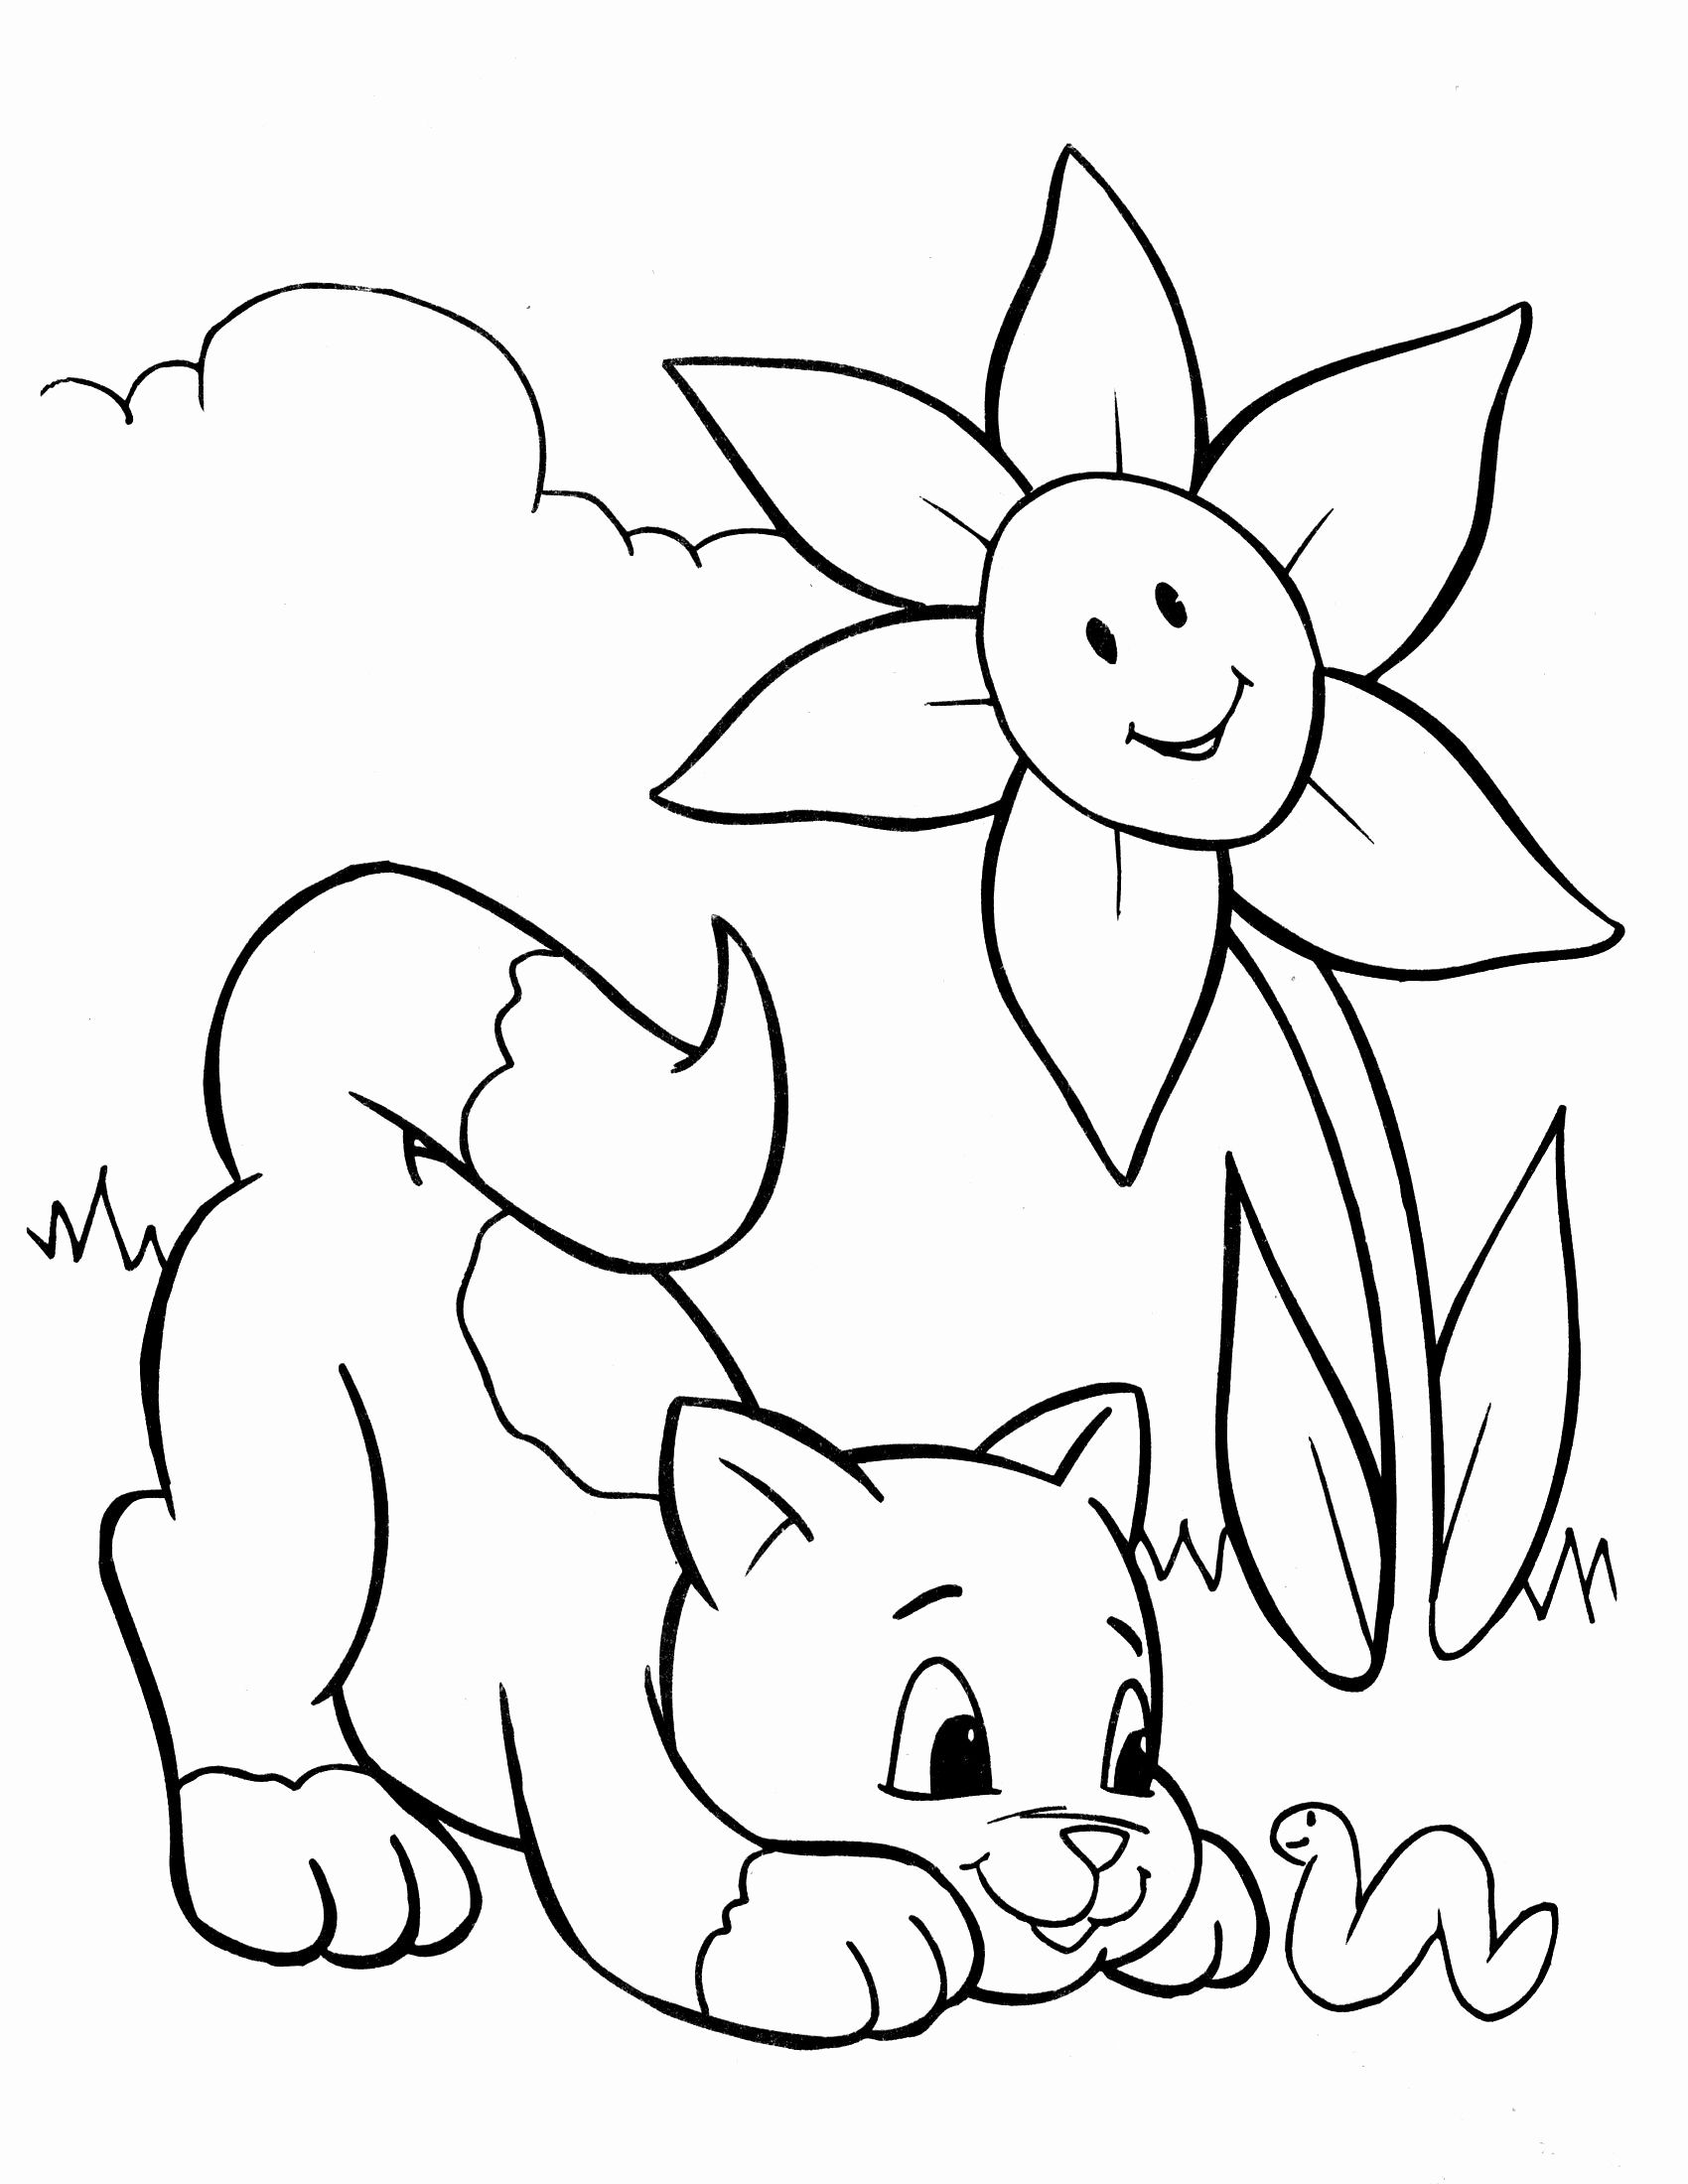 Crayola Coloring Pages Fall - Thekidsworksheet